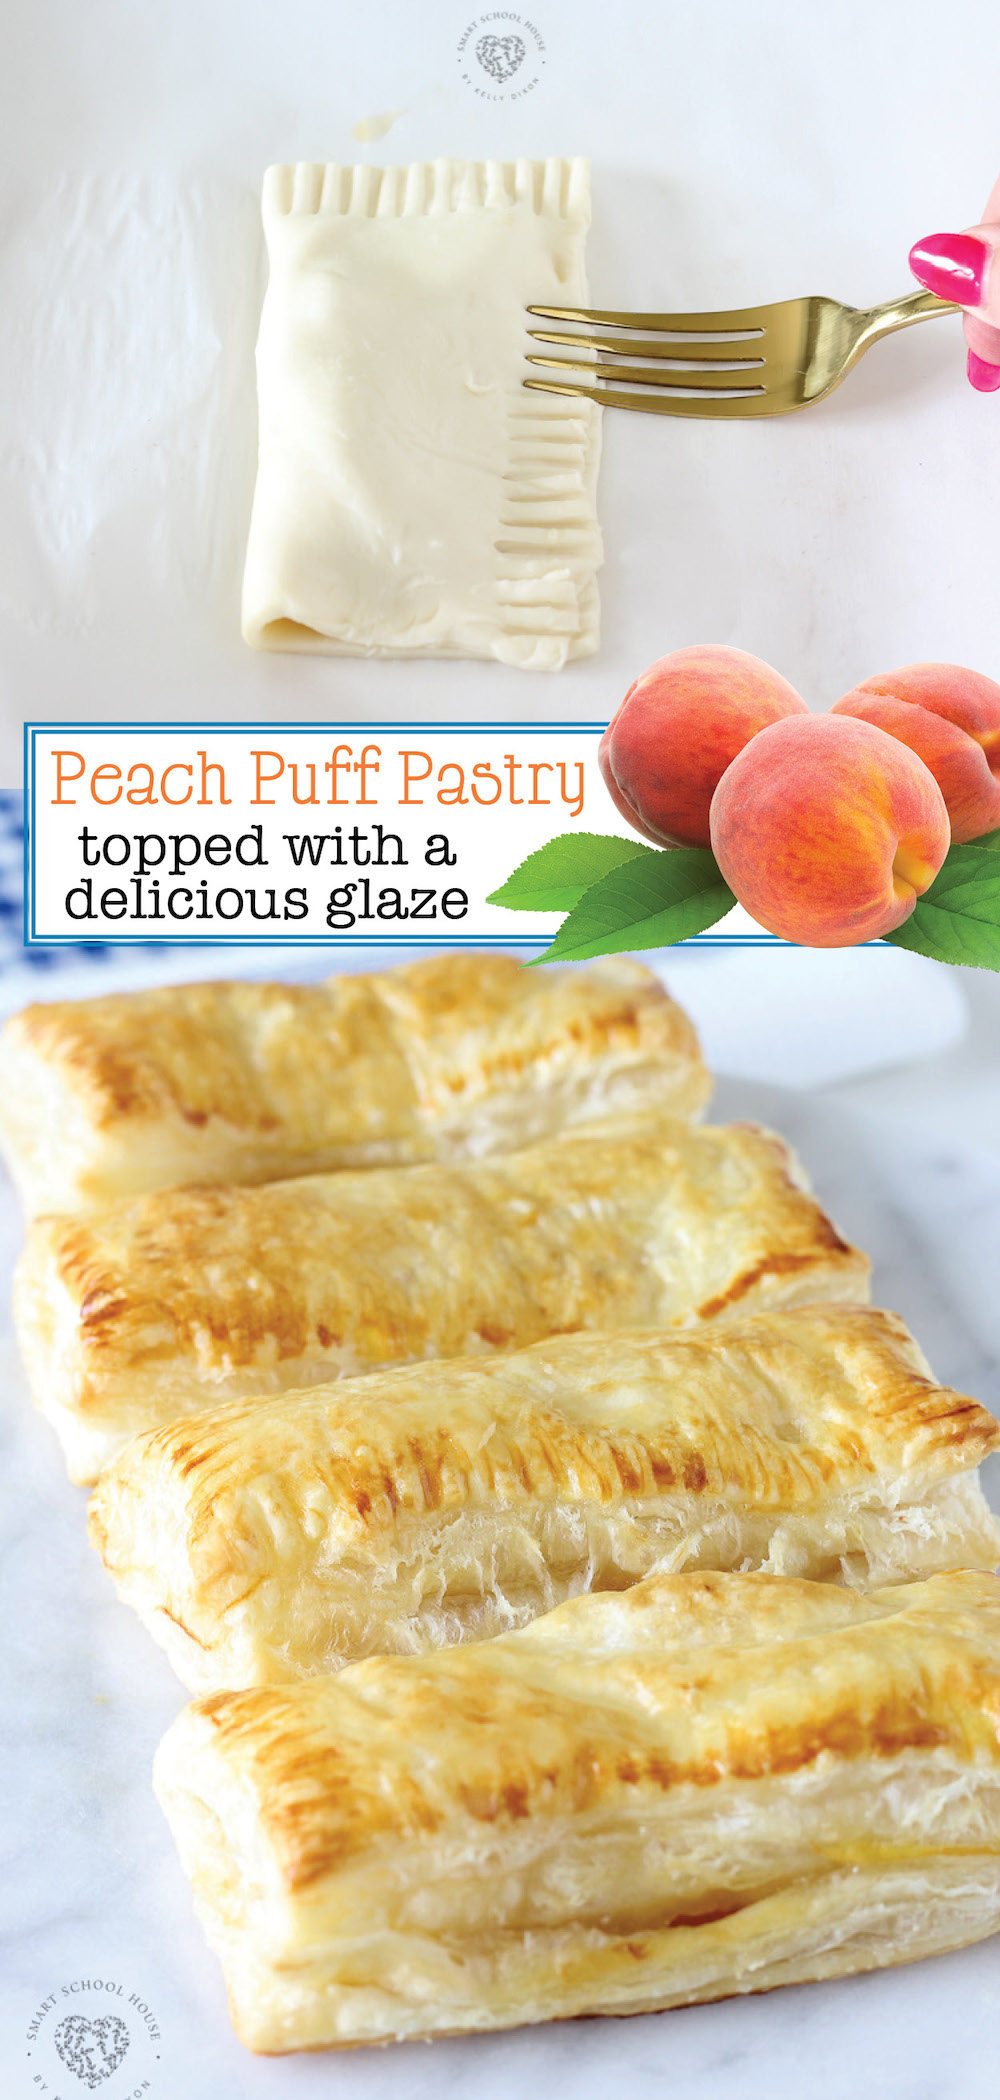 Our Peach Puff Pastry recipe with an irresistible homemade glaze is delicious and so quick & easy to make! It's made using peaches and puff pastry sheets.